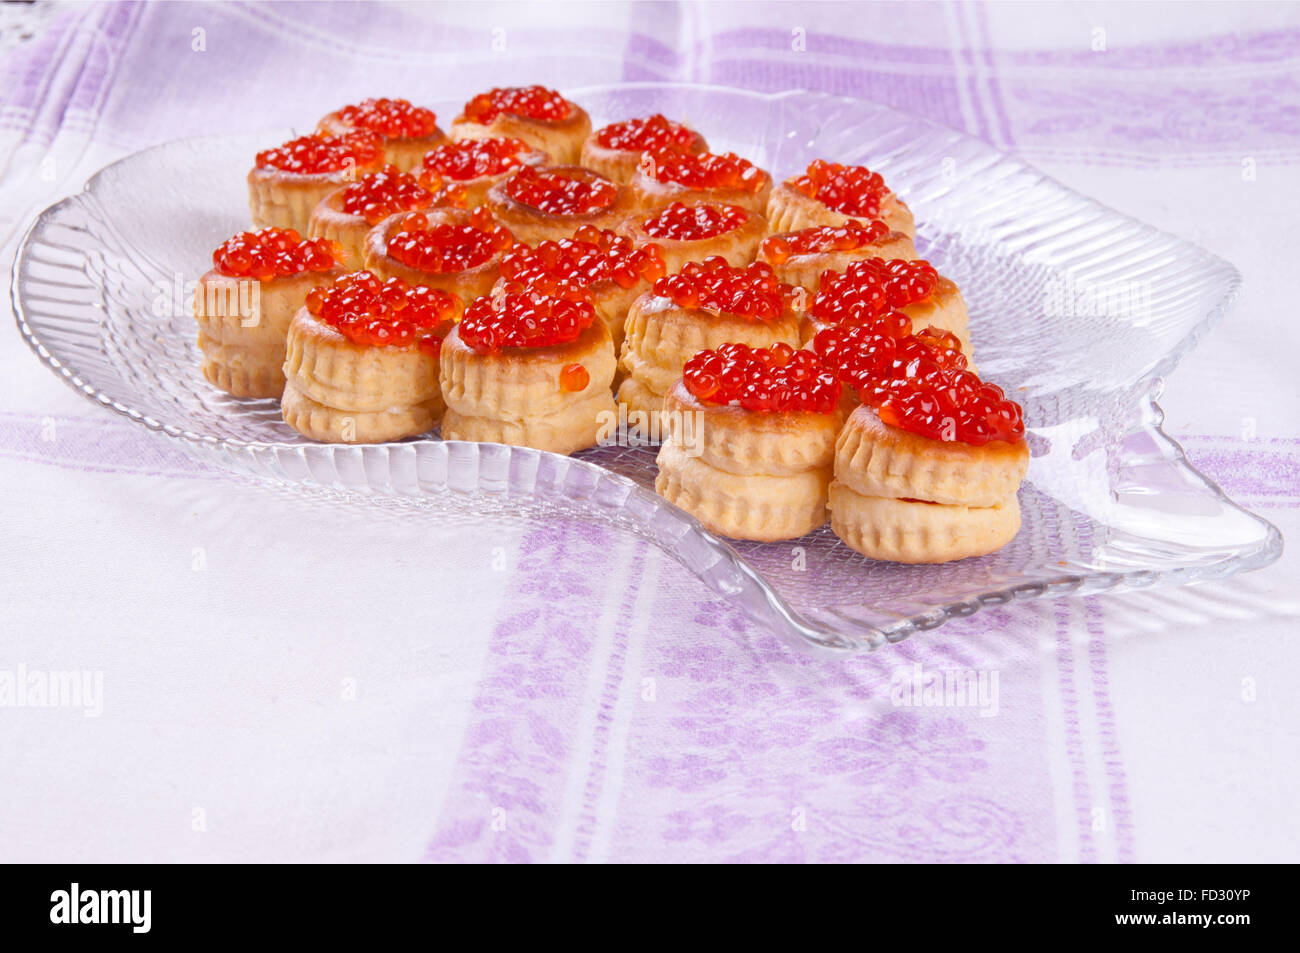 tartlets with red caviar - Stock Image